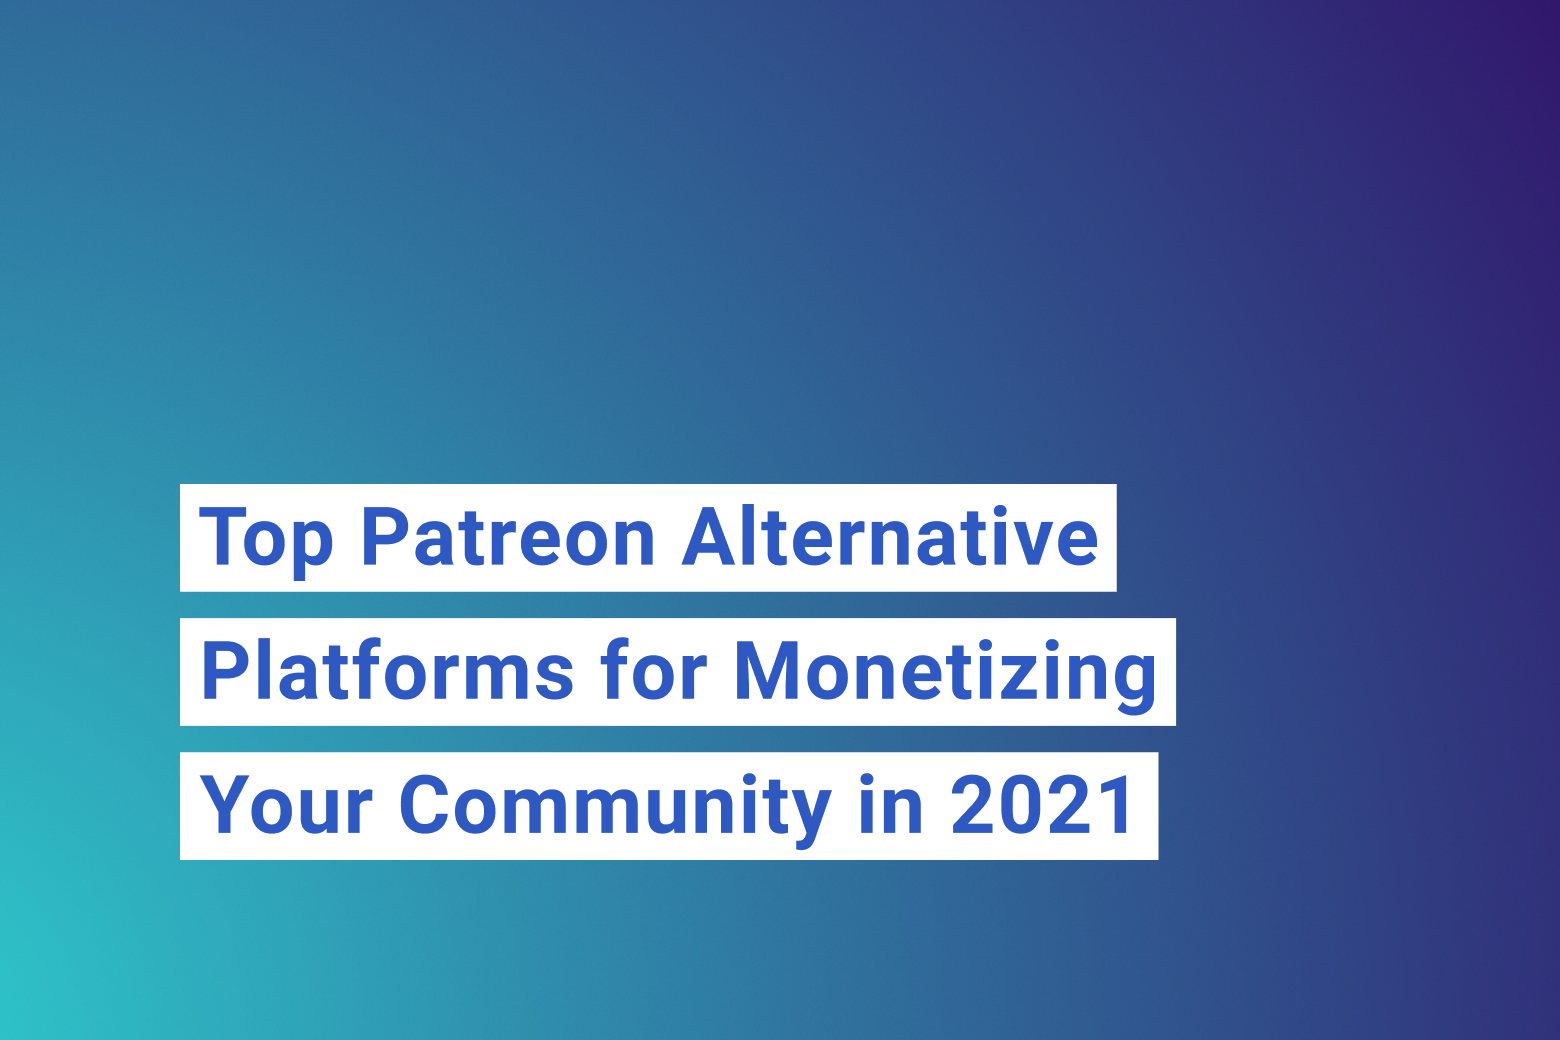 Patreon alternative platforms